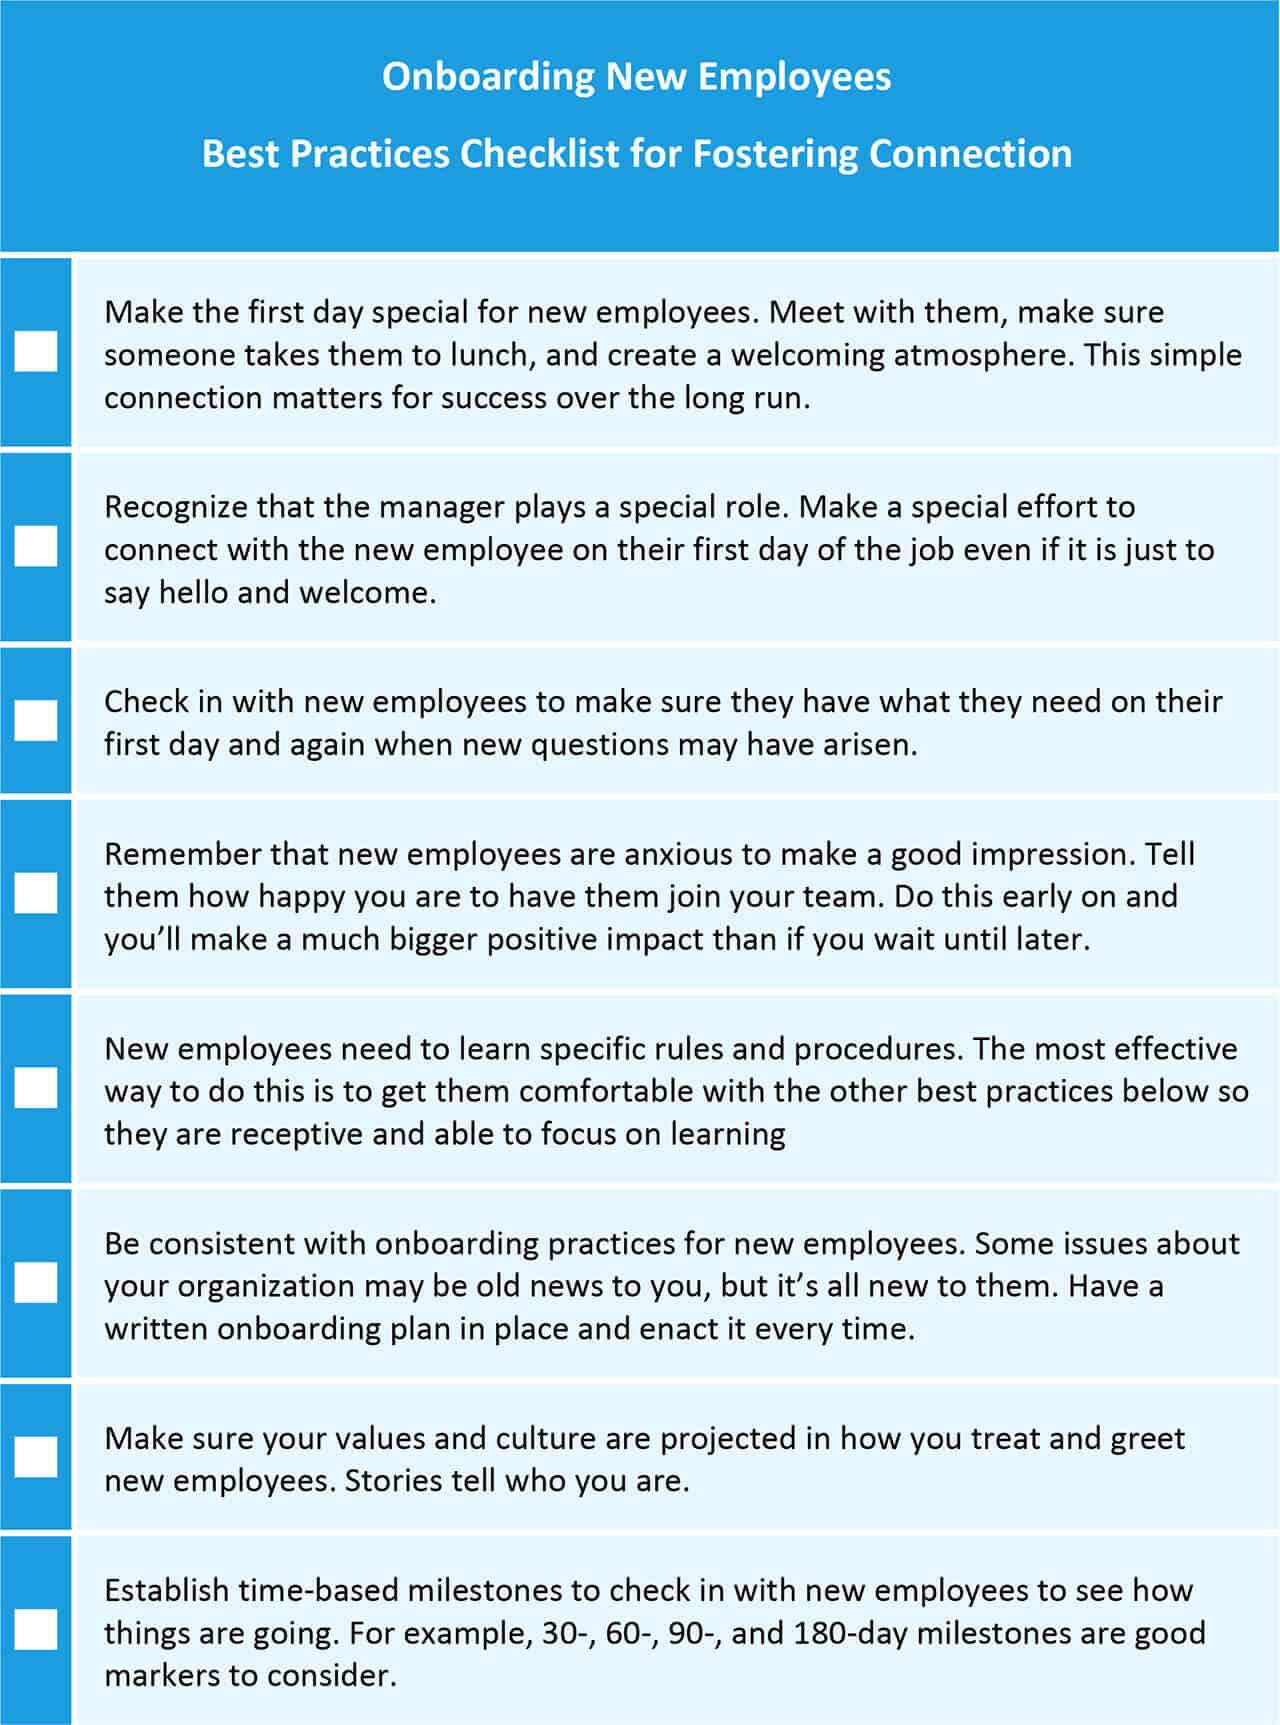 Onboarding New Employees Best Practices Checklist